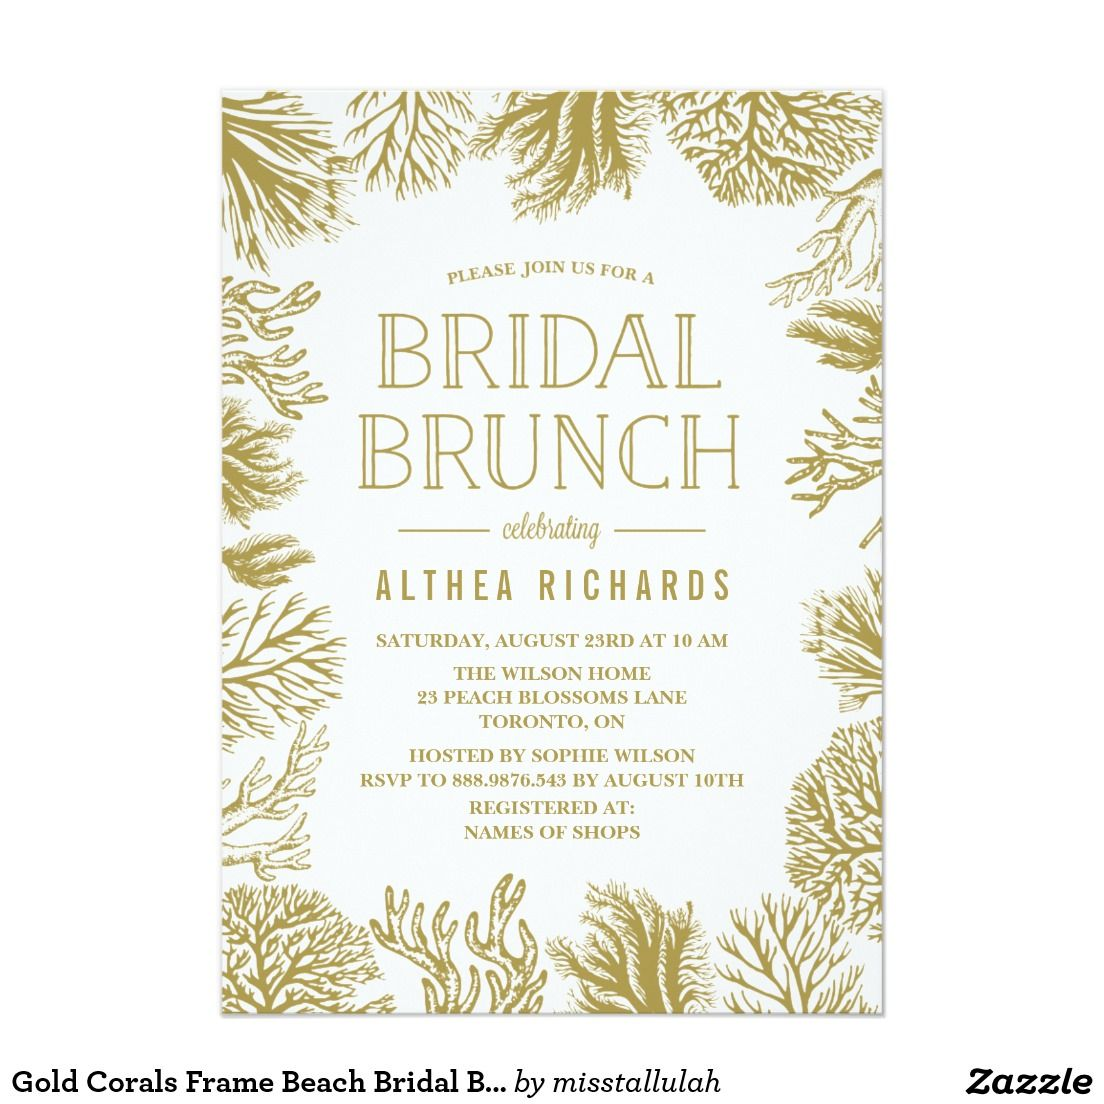 Gold Corals Frame Beach Bridal Brunch Invitation | WEDDING: BRIDAL ...